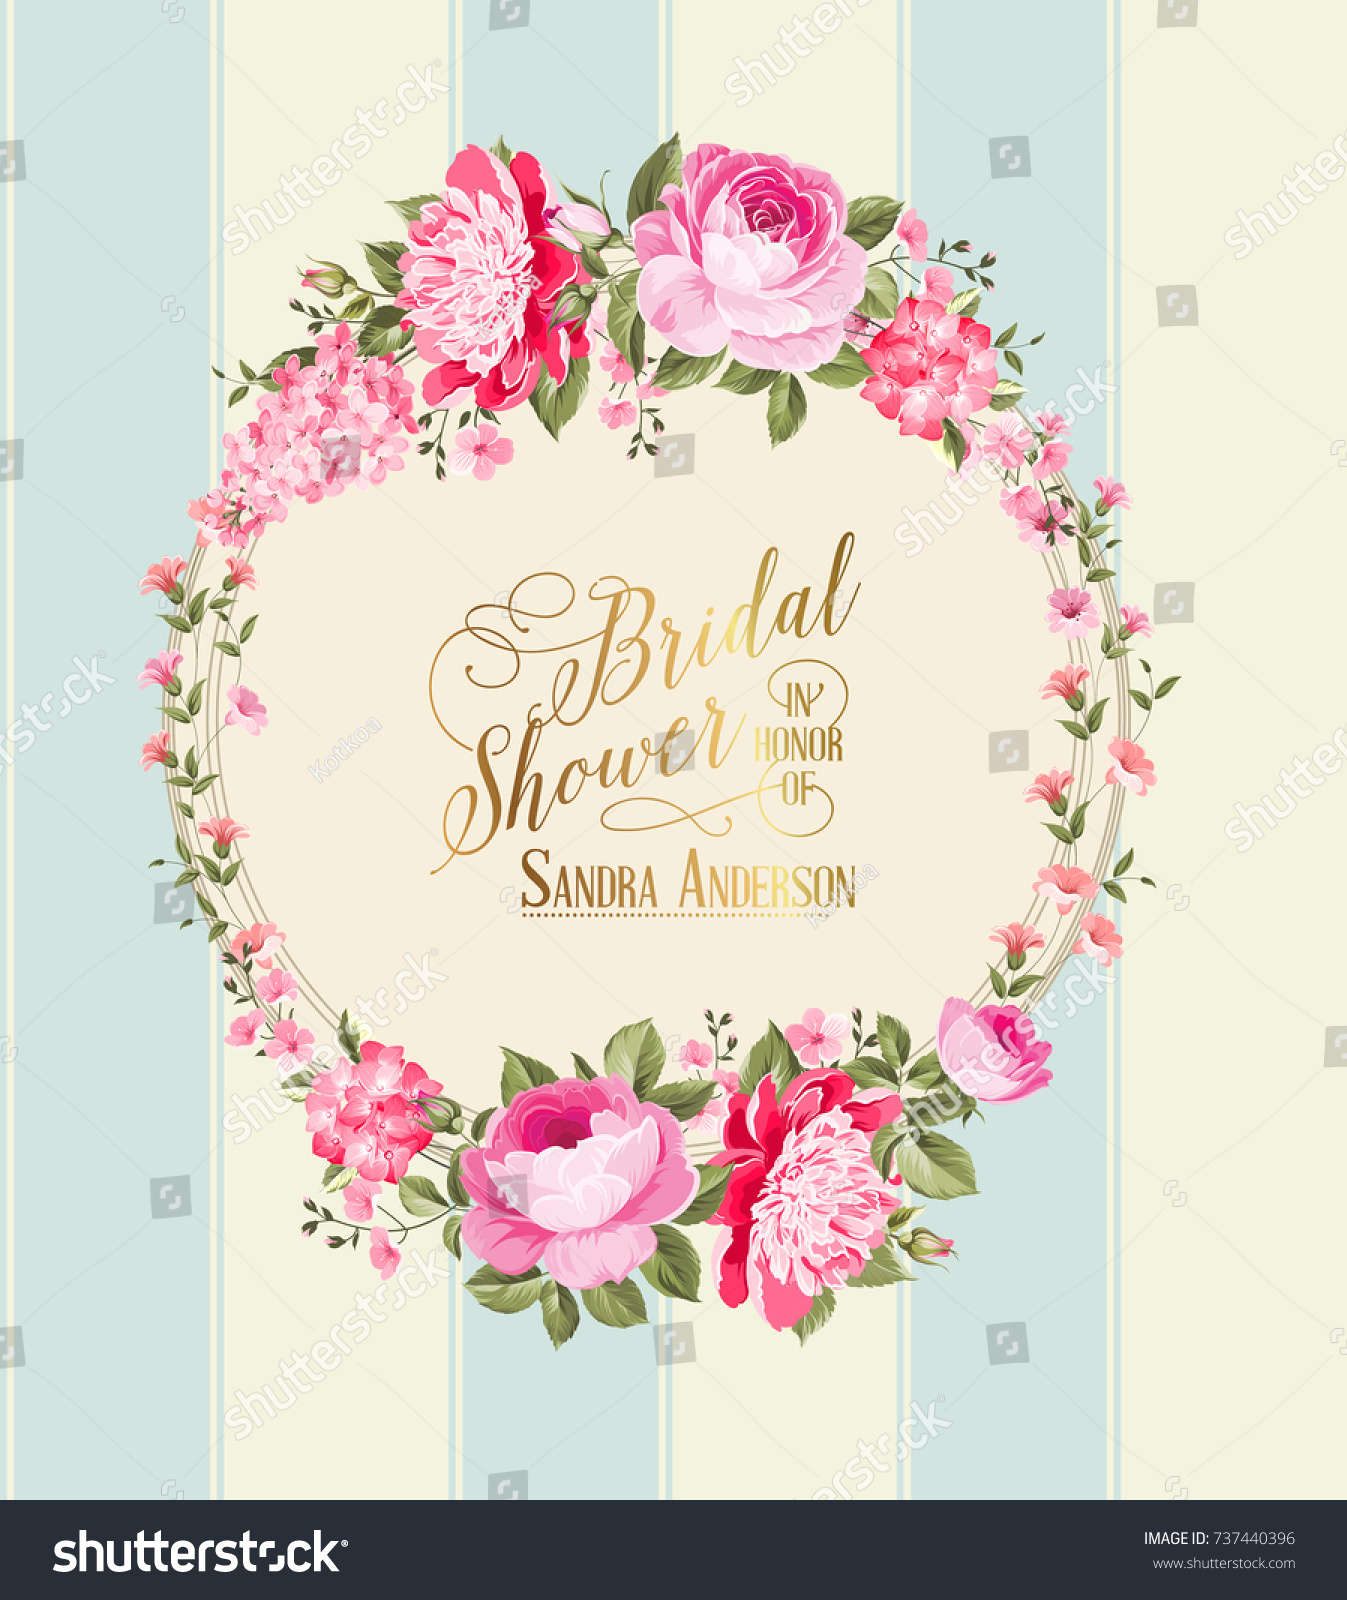 Wedding Invitation Card With Pink Flowers Vintage Template Boy And Girl